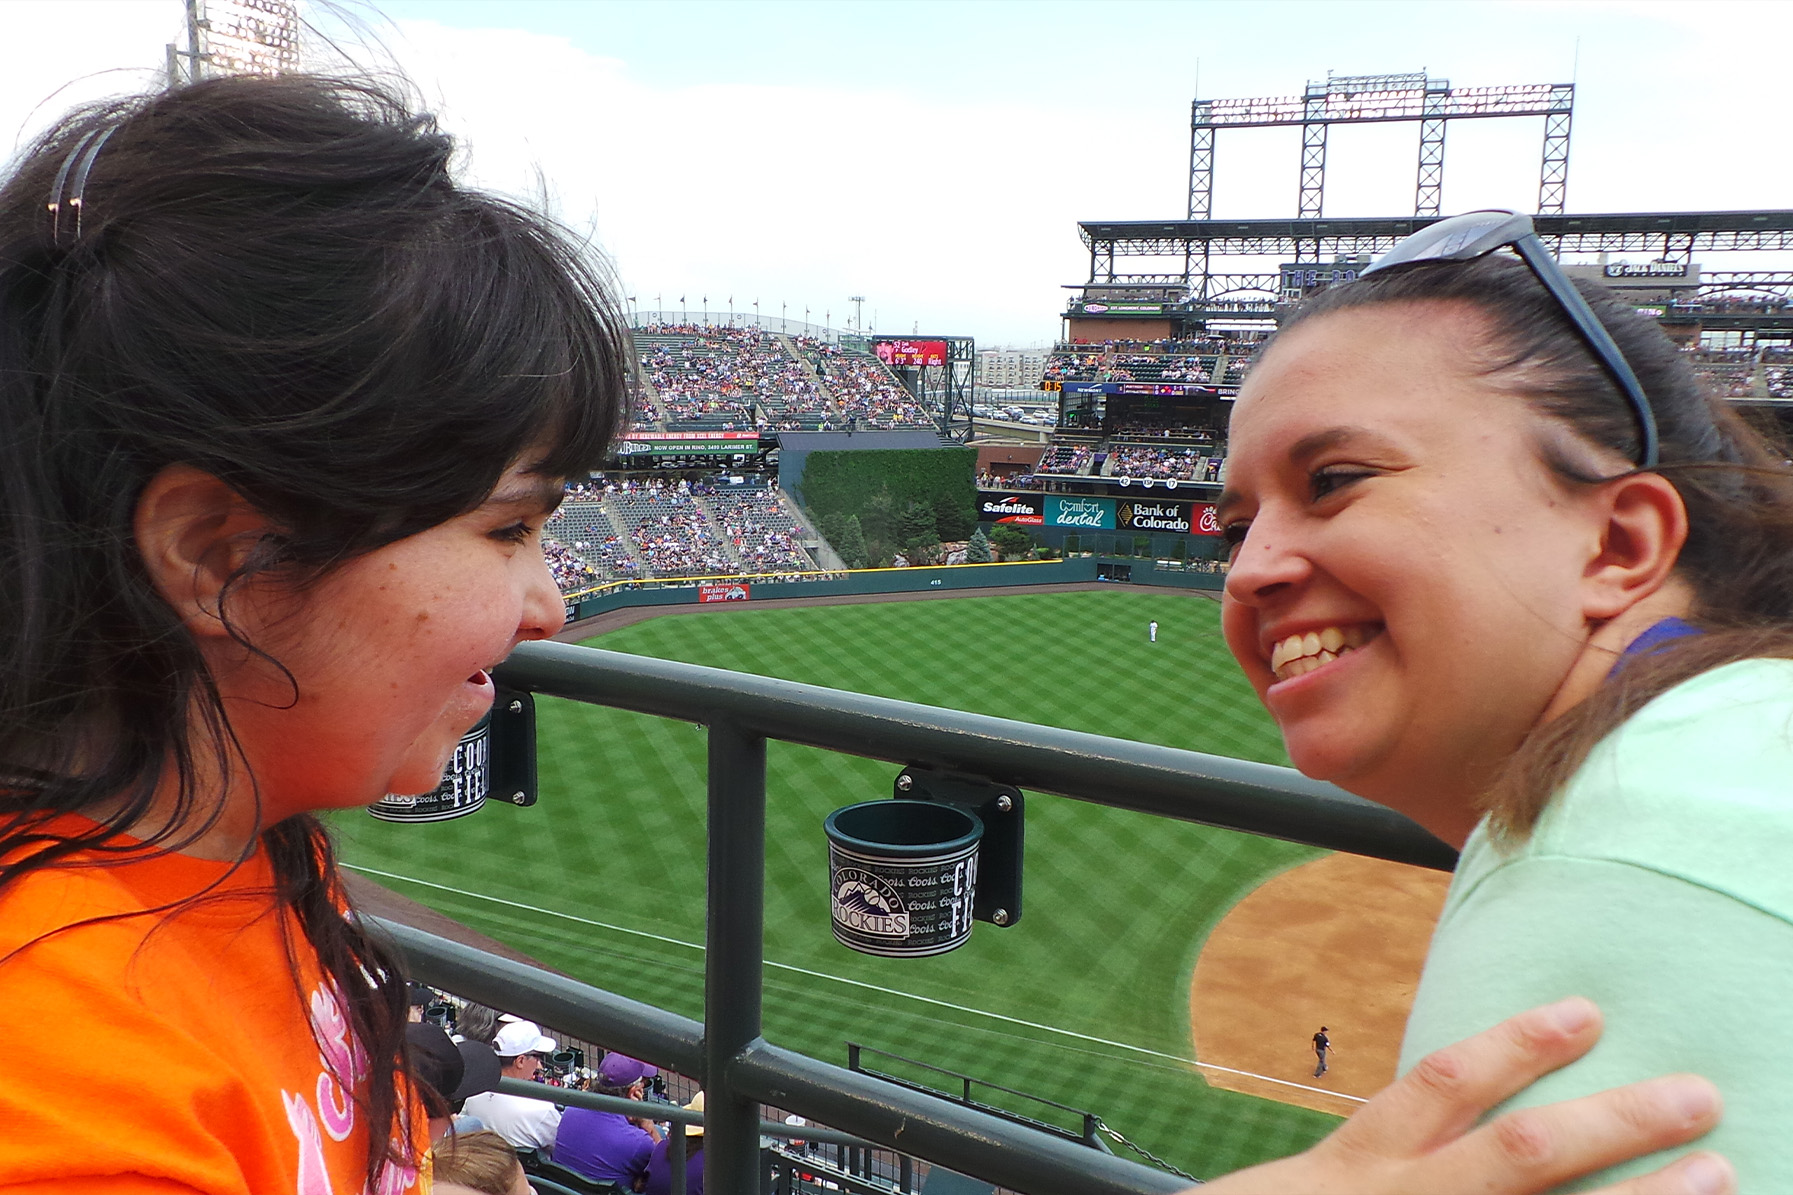 Therapeutic recreation participants at a Colorado Rockies game.